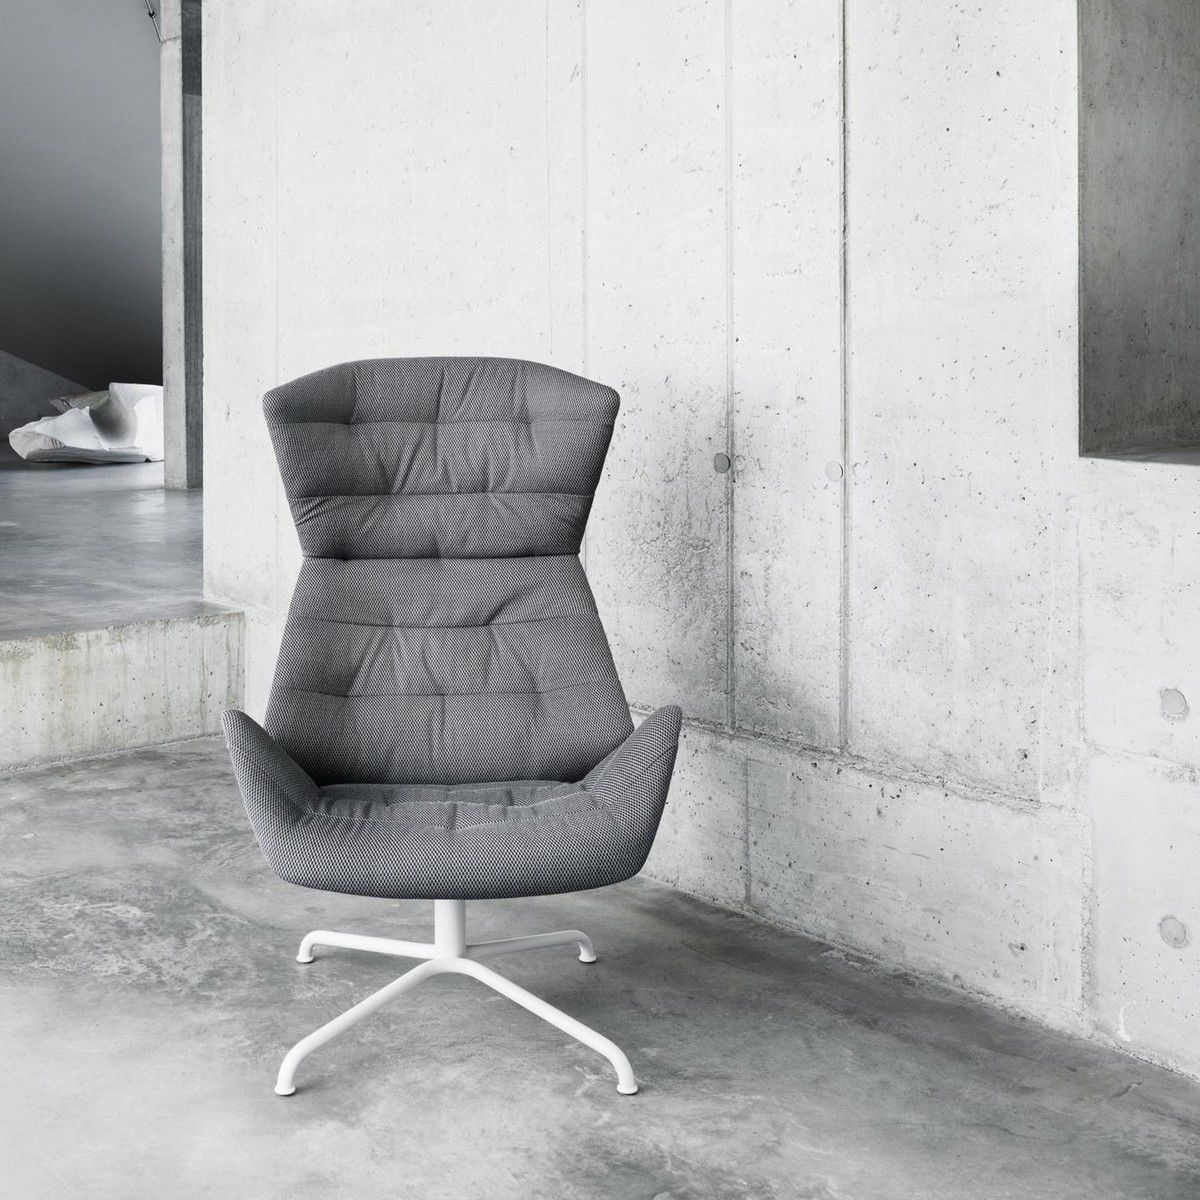 Lounge-sessel 808 Thonet Sessel 808